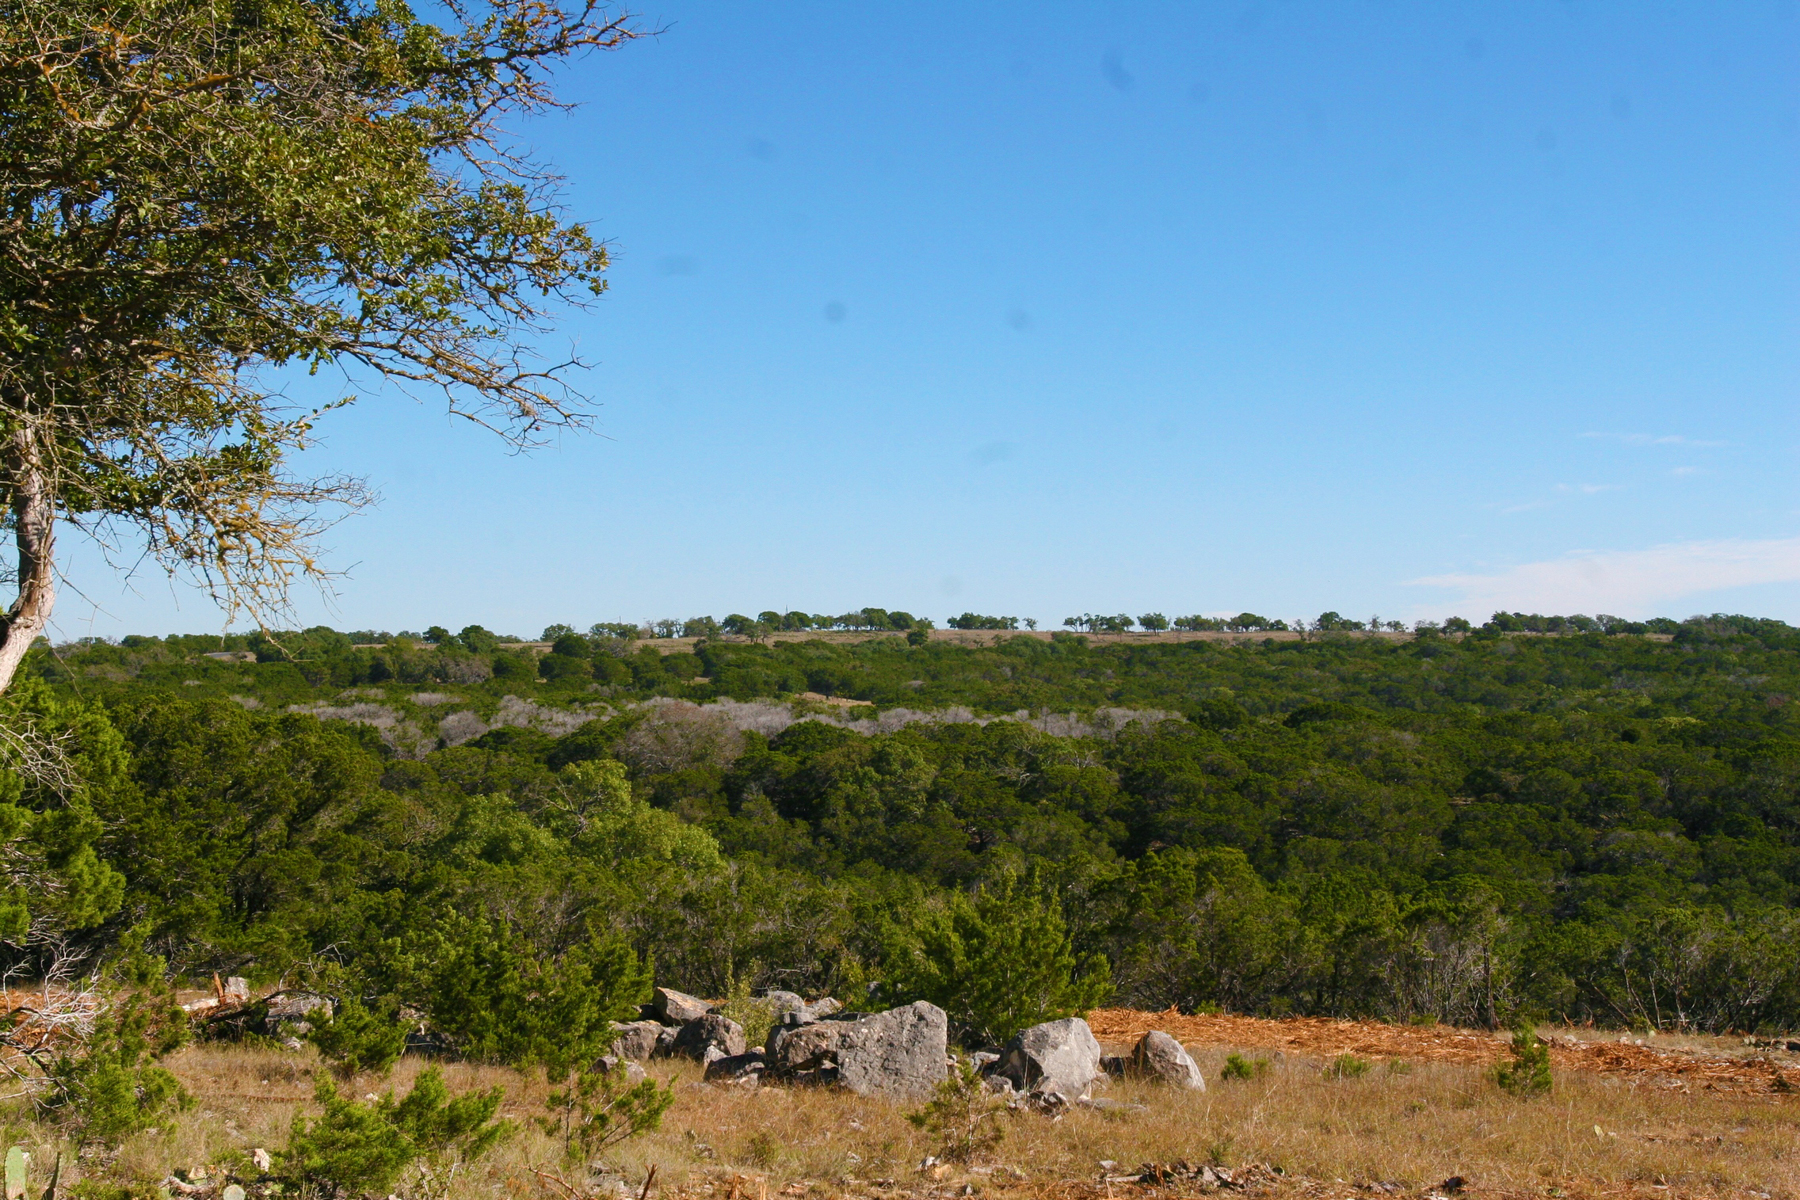 Farm / Ranch / Plantation for Sale at 17± Acres - 0 McCullough Ranch Road 0 McCullough Ranch Rd Kerrville, Texas 78028 United States